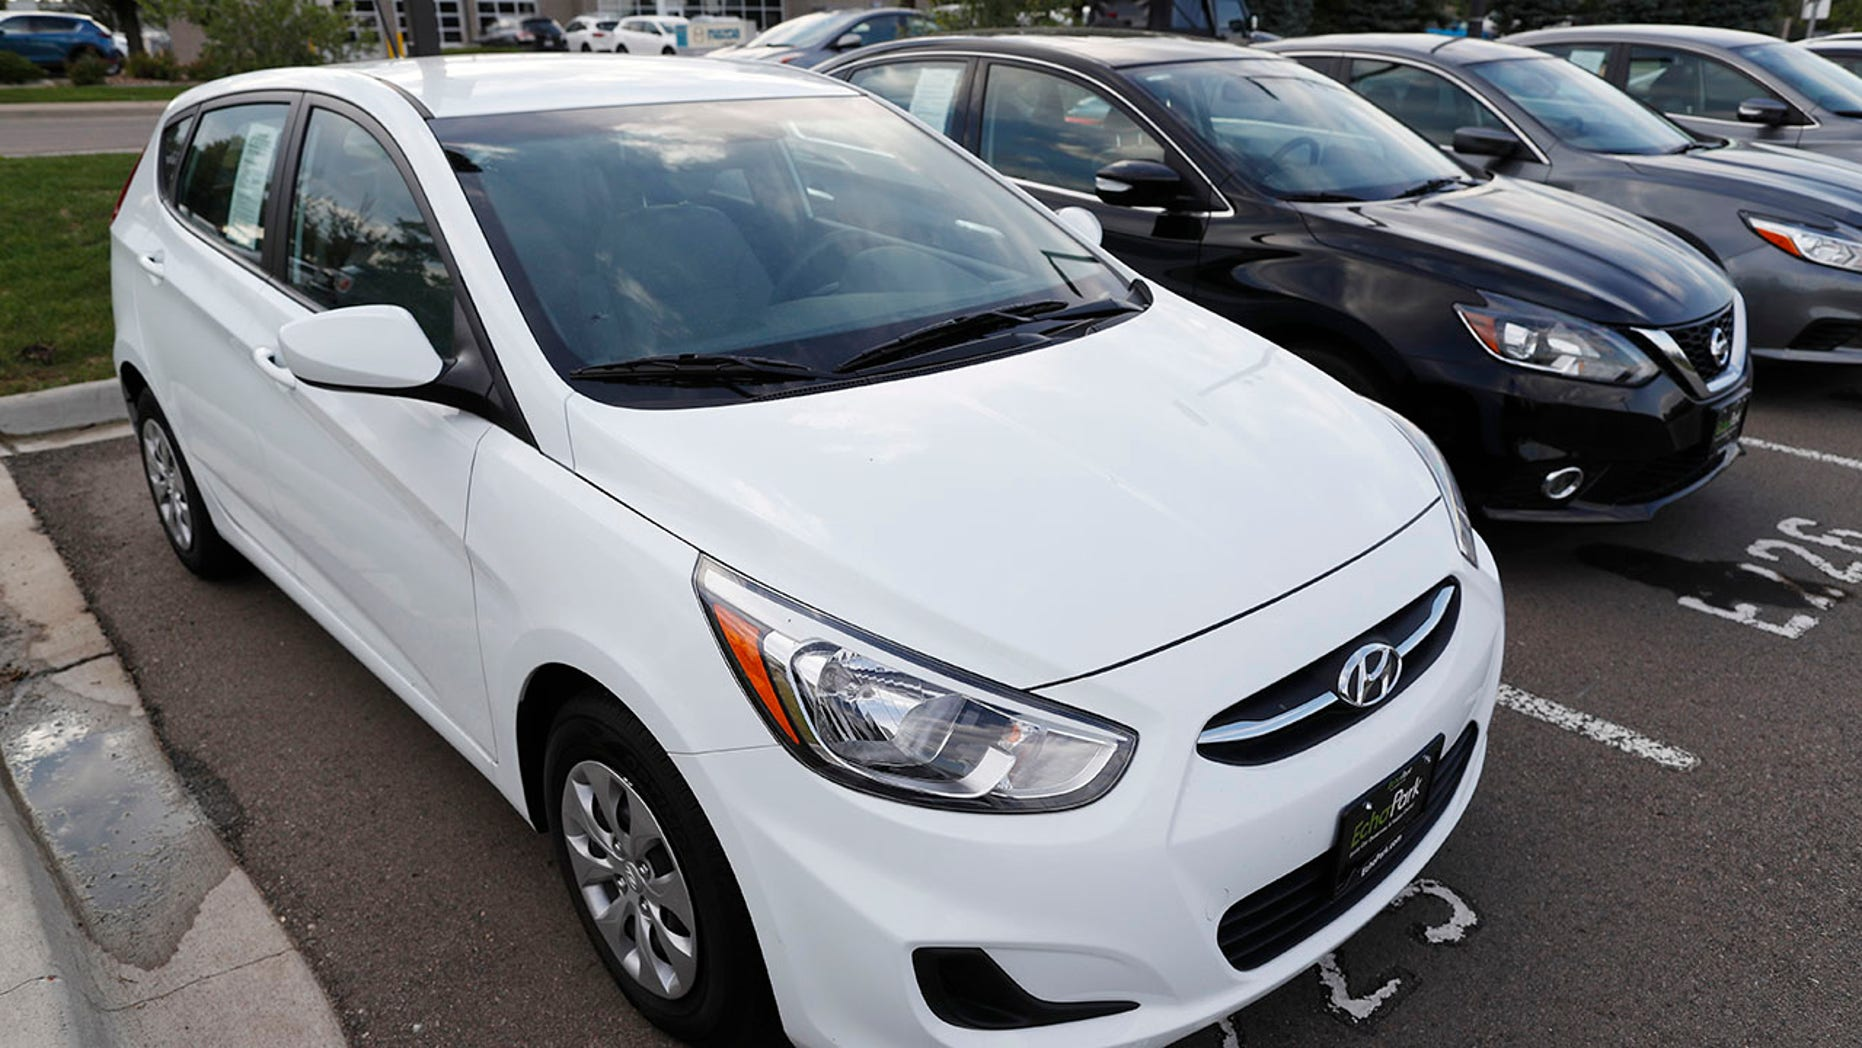 In this Tuesday, June 26, 2018, photograph, a used 2017 Hyundai Accent hatchback sits in a row of other used, late-model sedans at a dealership in Centennial, Colo. Prices of used small cars are on the rise after falling for the past five years. (AP Photo/David Zalubowski)